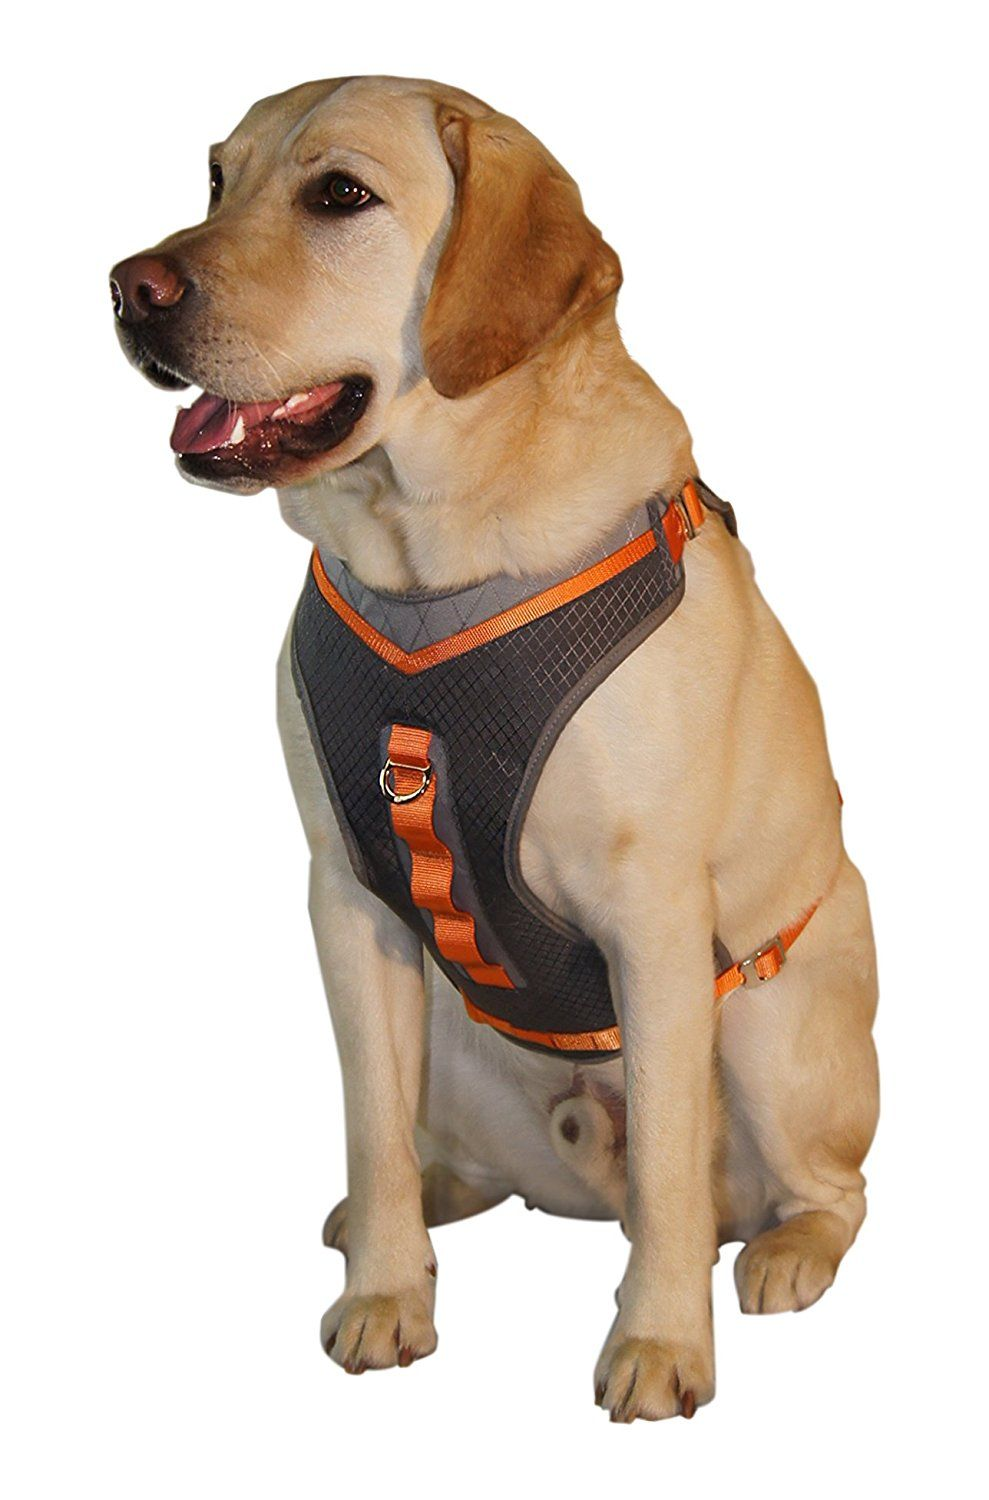 Kurgo Pinnacle Dog Harness Insiders Special Review You Cant Miss Read More Harnesses For Dogs